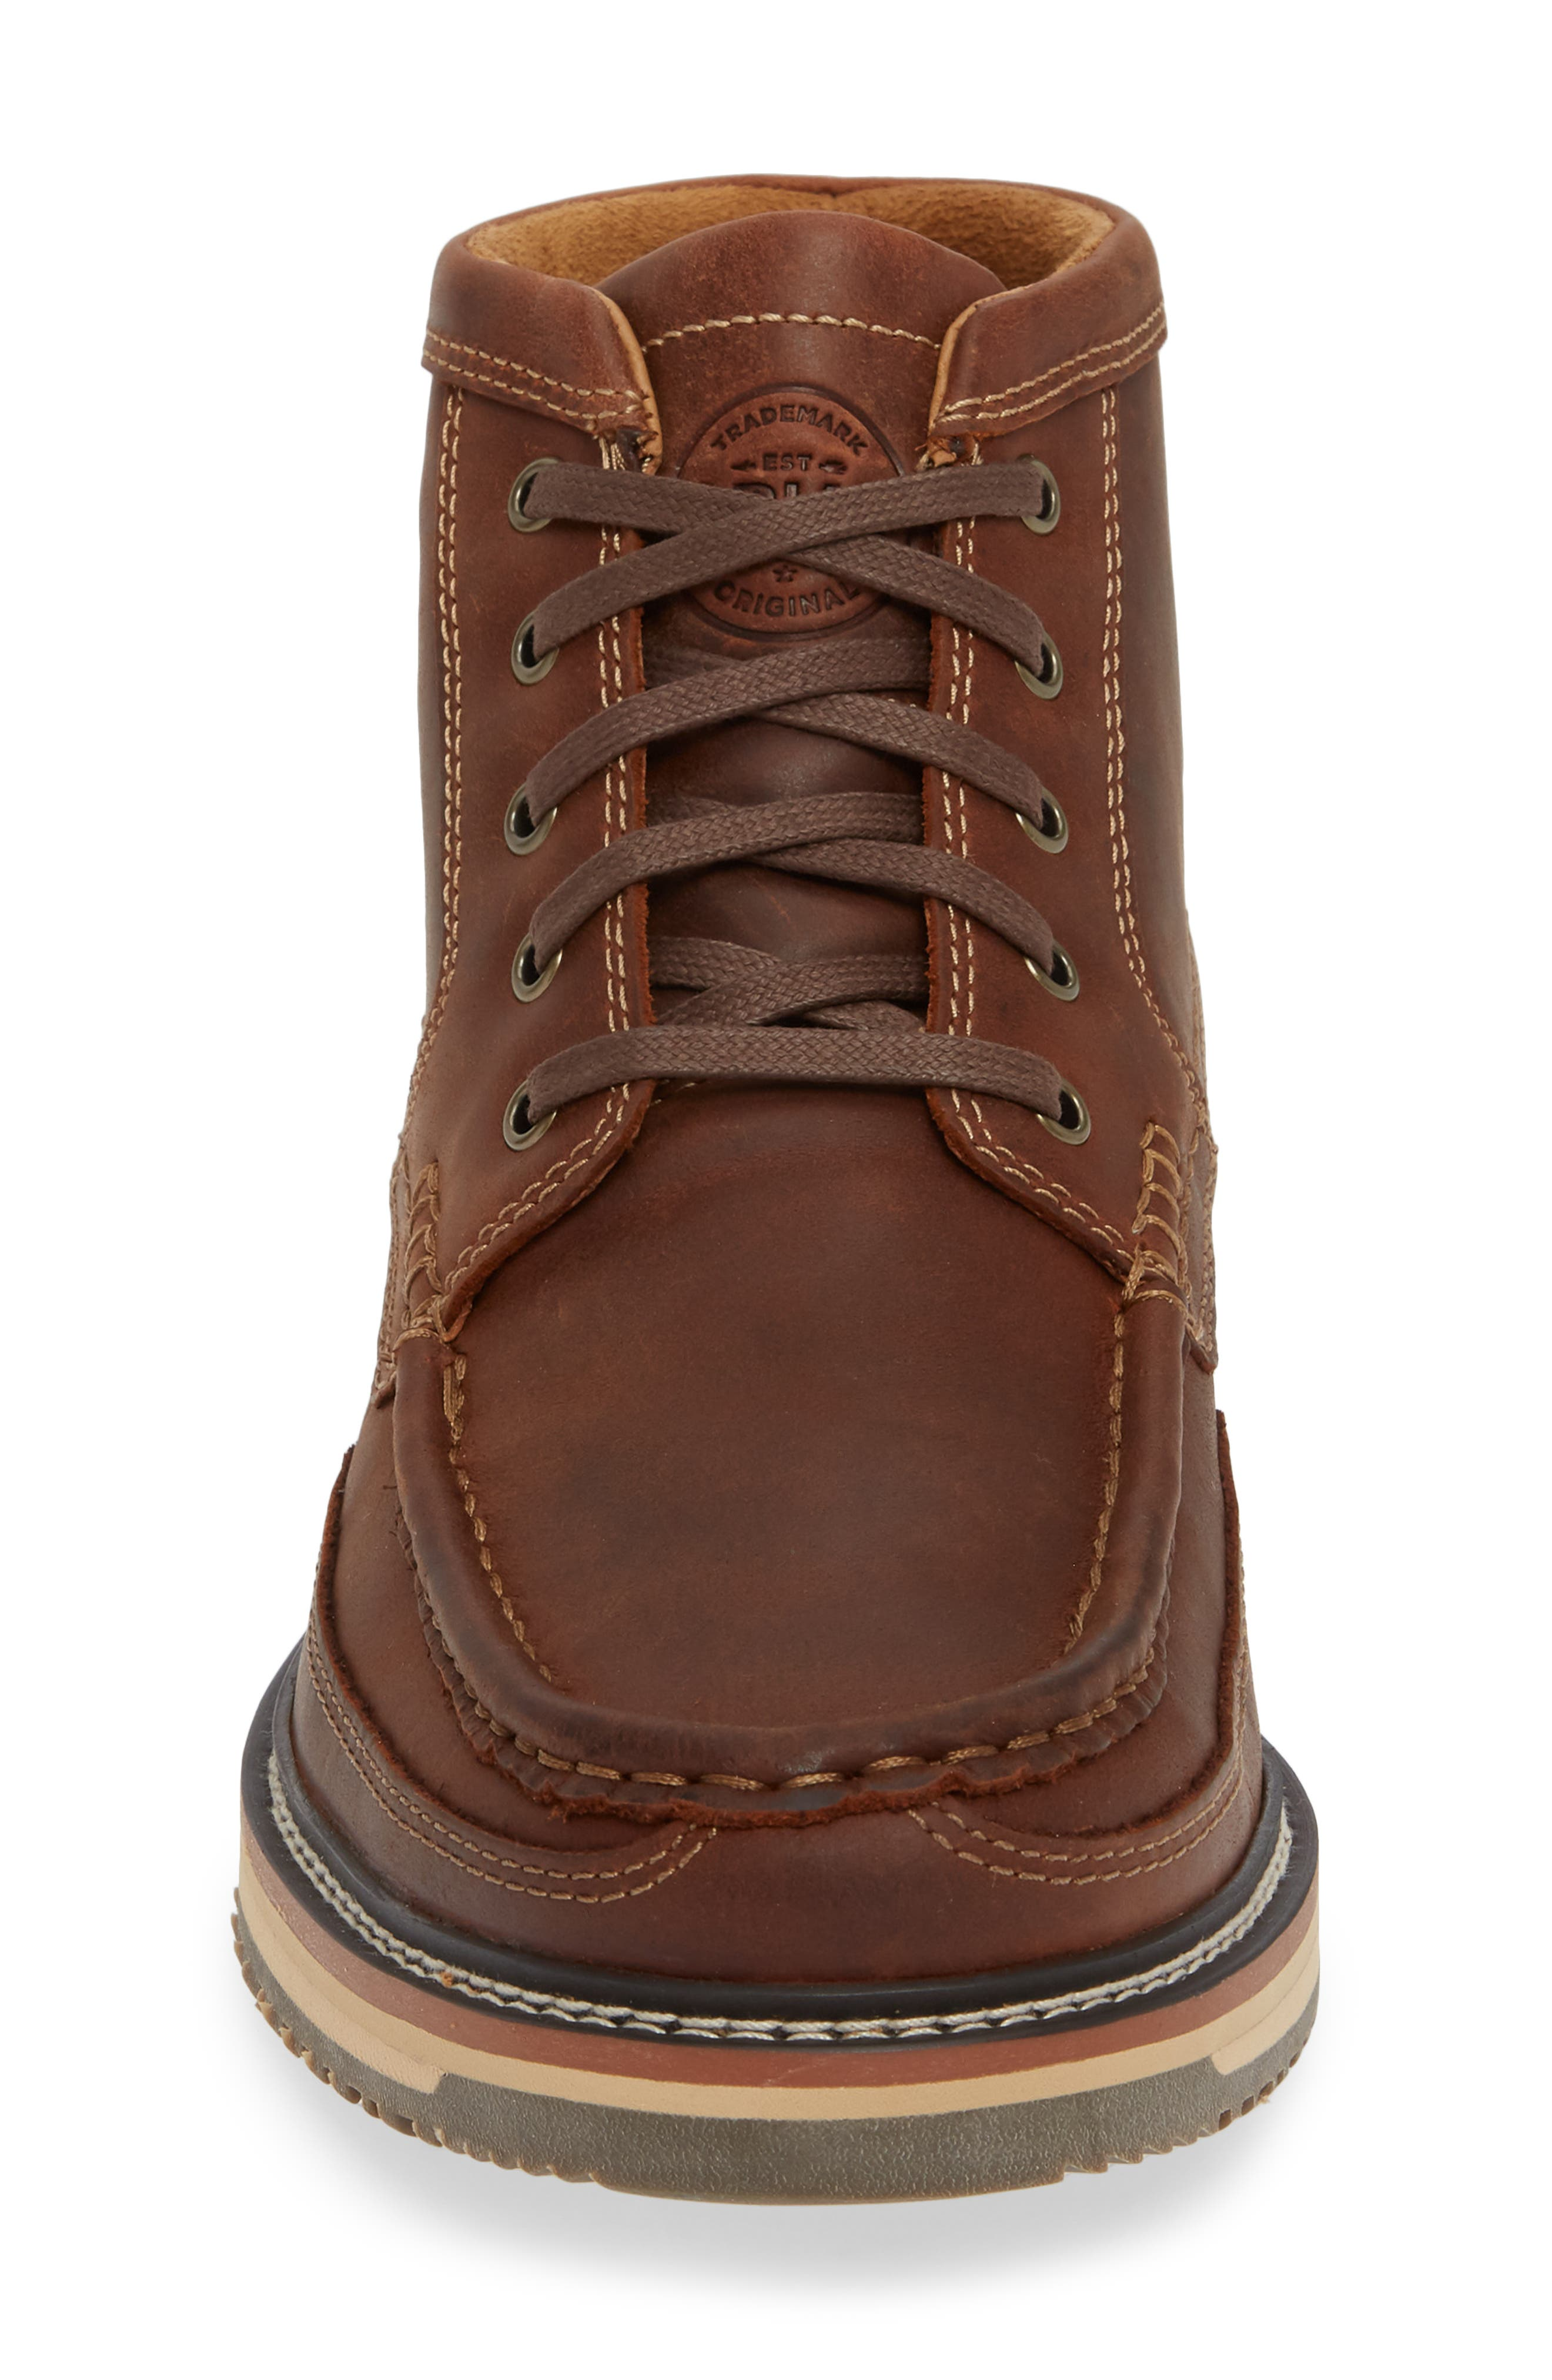 'Lookout' Moc Toe Boot,                             Alternate thumbnail 4, color,                             FOOTHILL BROWN LEATHER